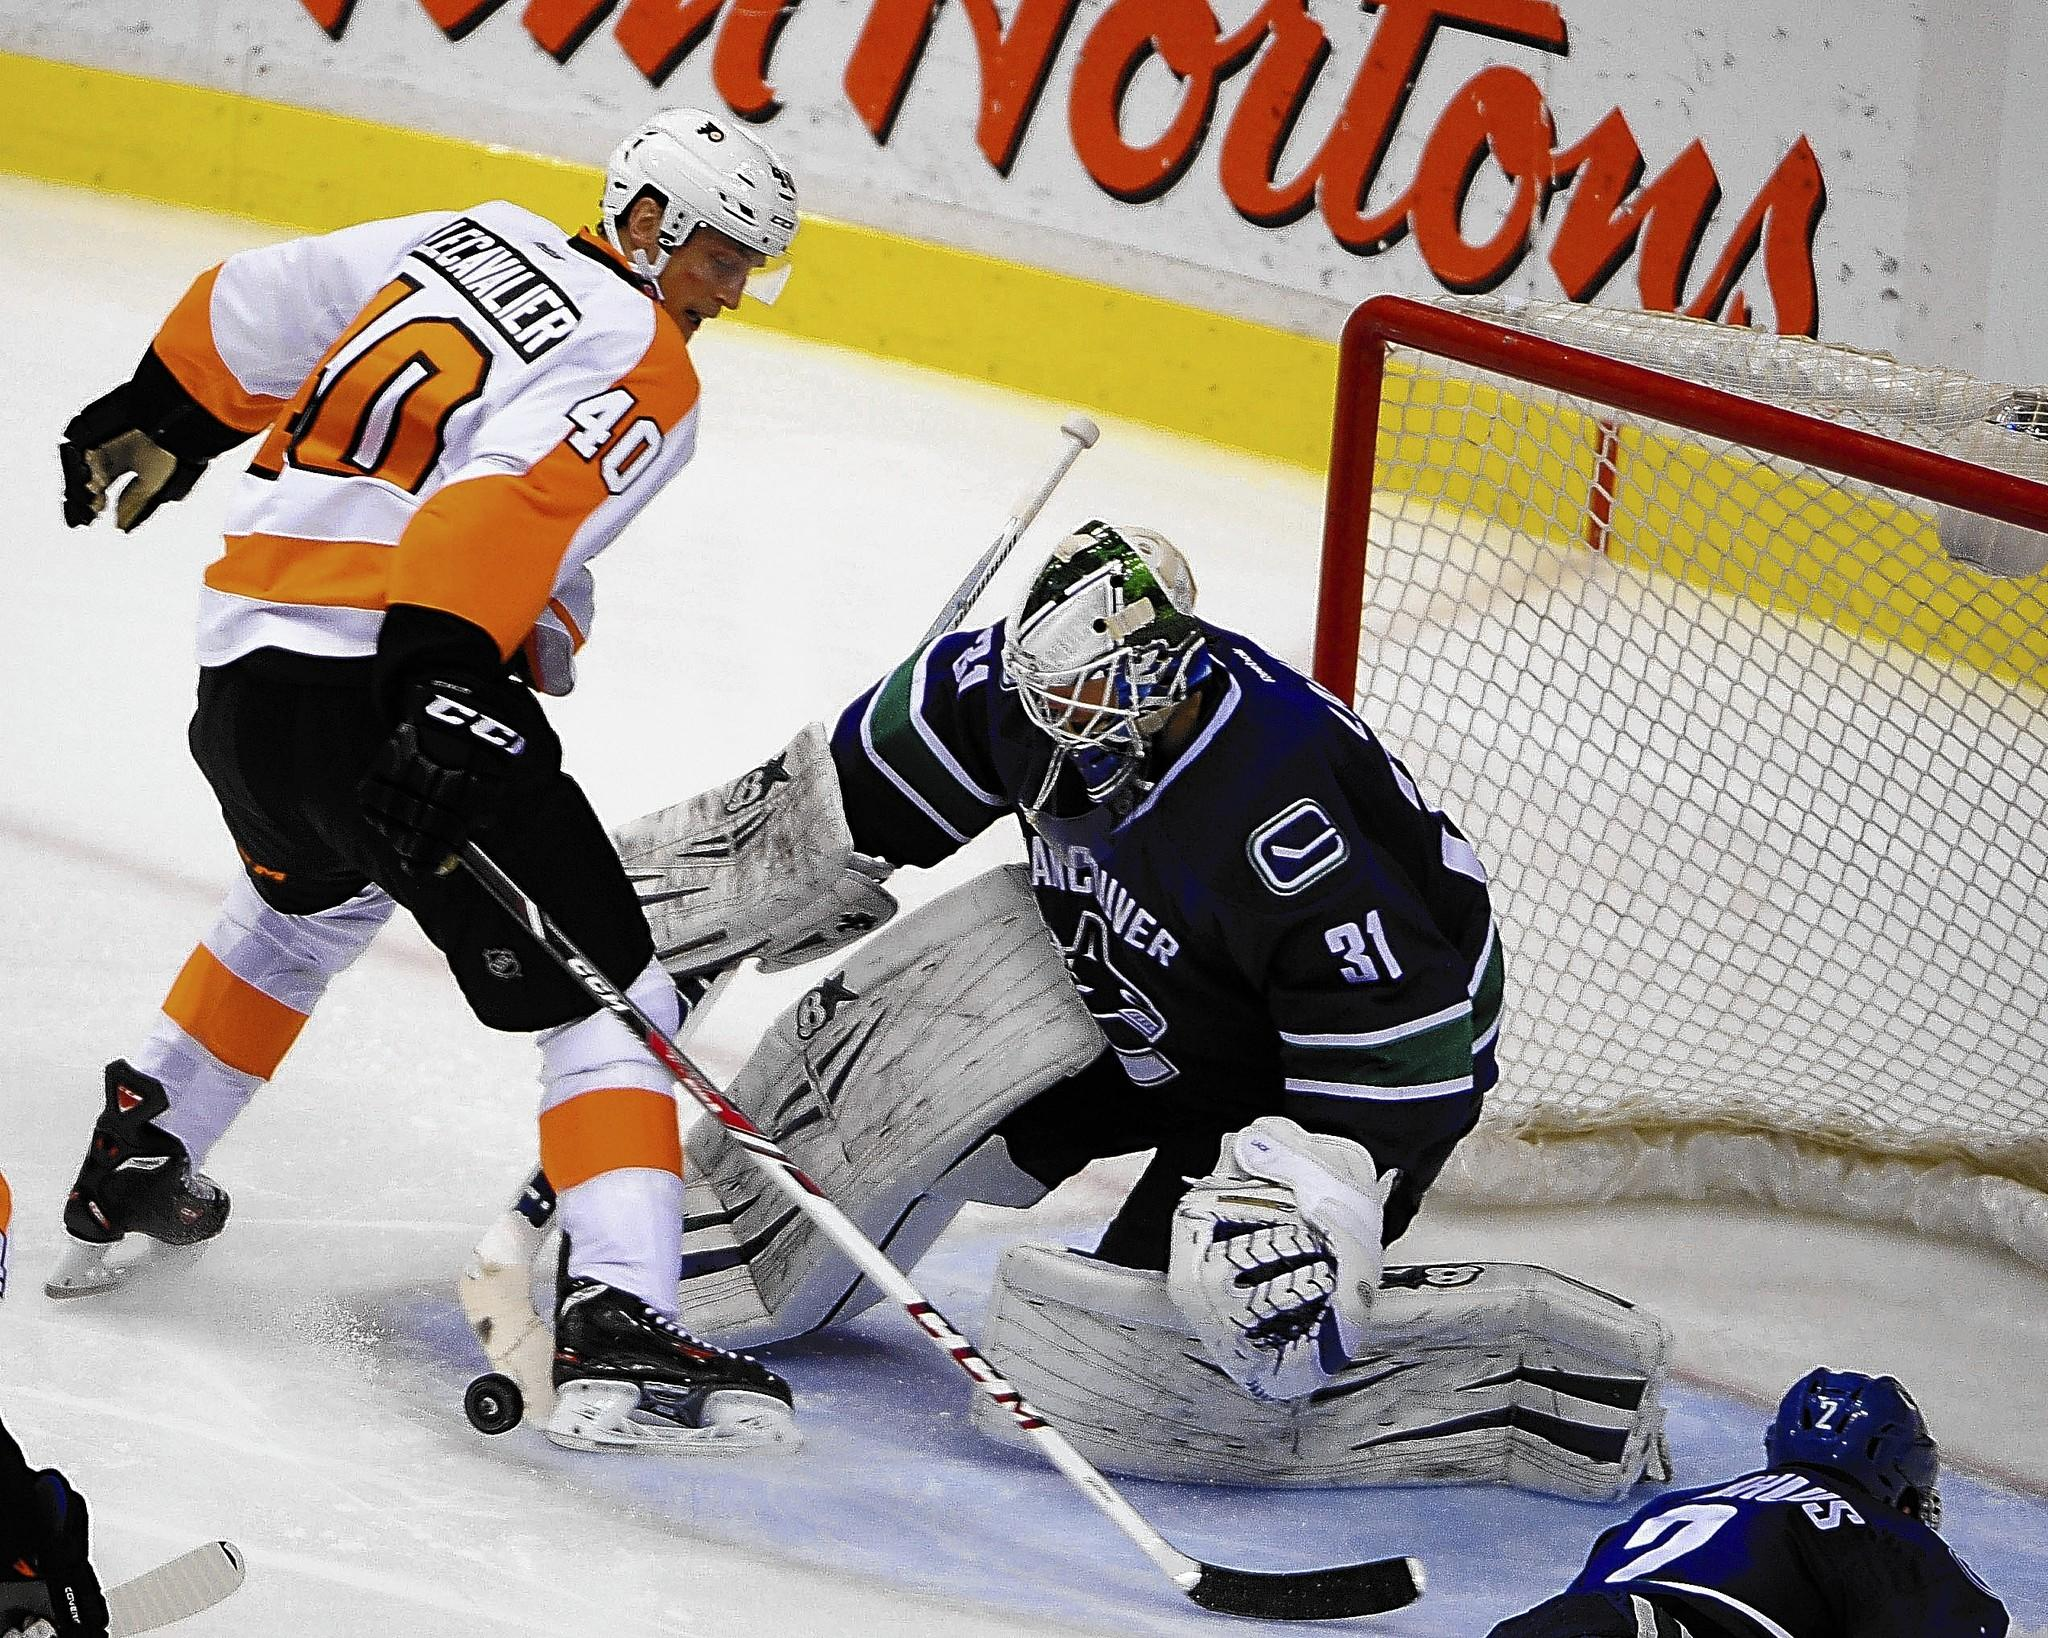 Flyers forward Vincent Lecavalier moves the puck in front of Vancouver goaltender Eddie Lack during the third period at Rogers Arena on Monday night. Philadelphia won 4-3.